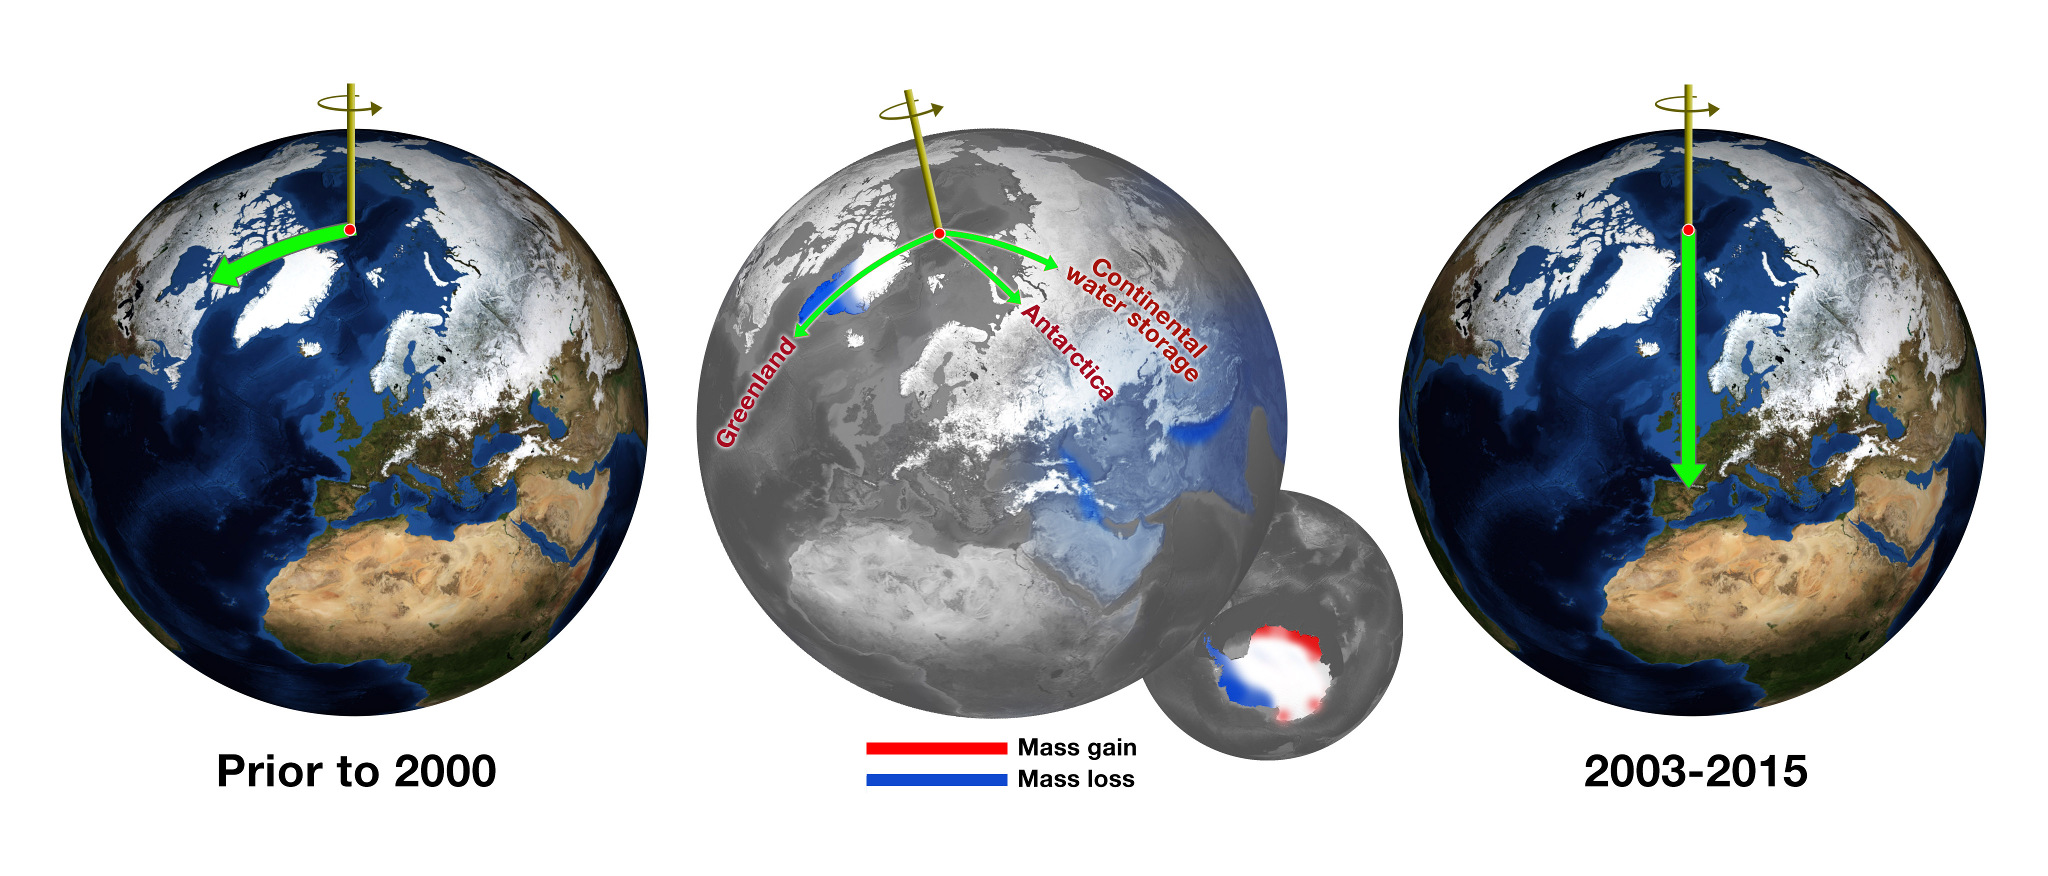 Before about 2000, Earth's spin axis was drifting toward Canada (green arrow, left globe). JPL scientists calculated the effect of changes in water mass in different regions (centre globe) in pulling the direction of drift eastward and speeding the rate (right globe). Illustration credits: NASA/JPL-Caltech.